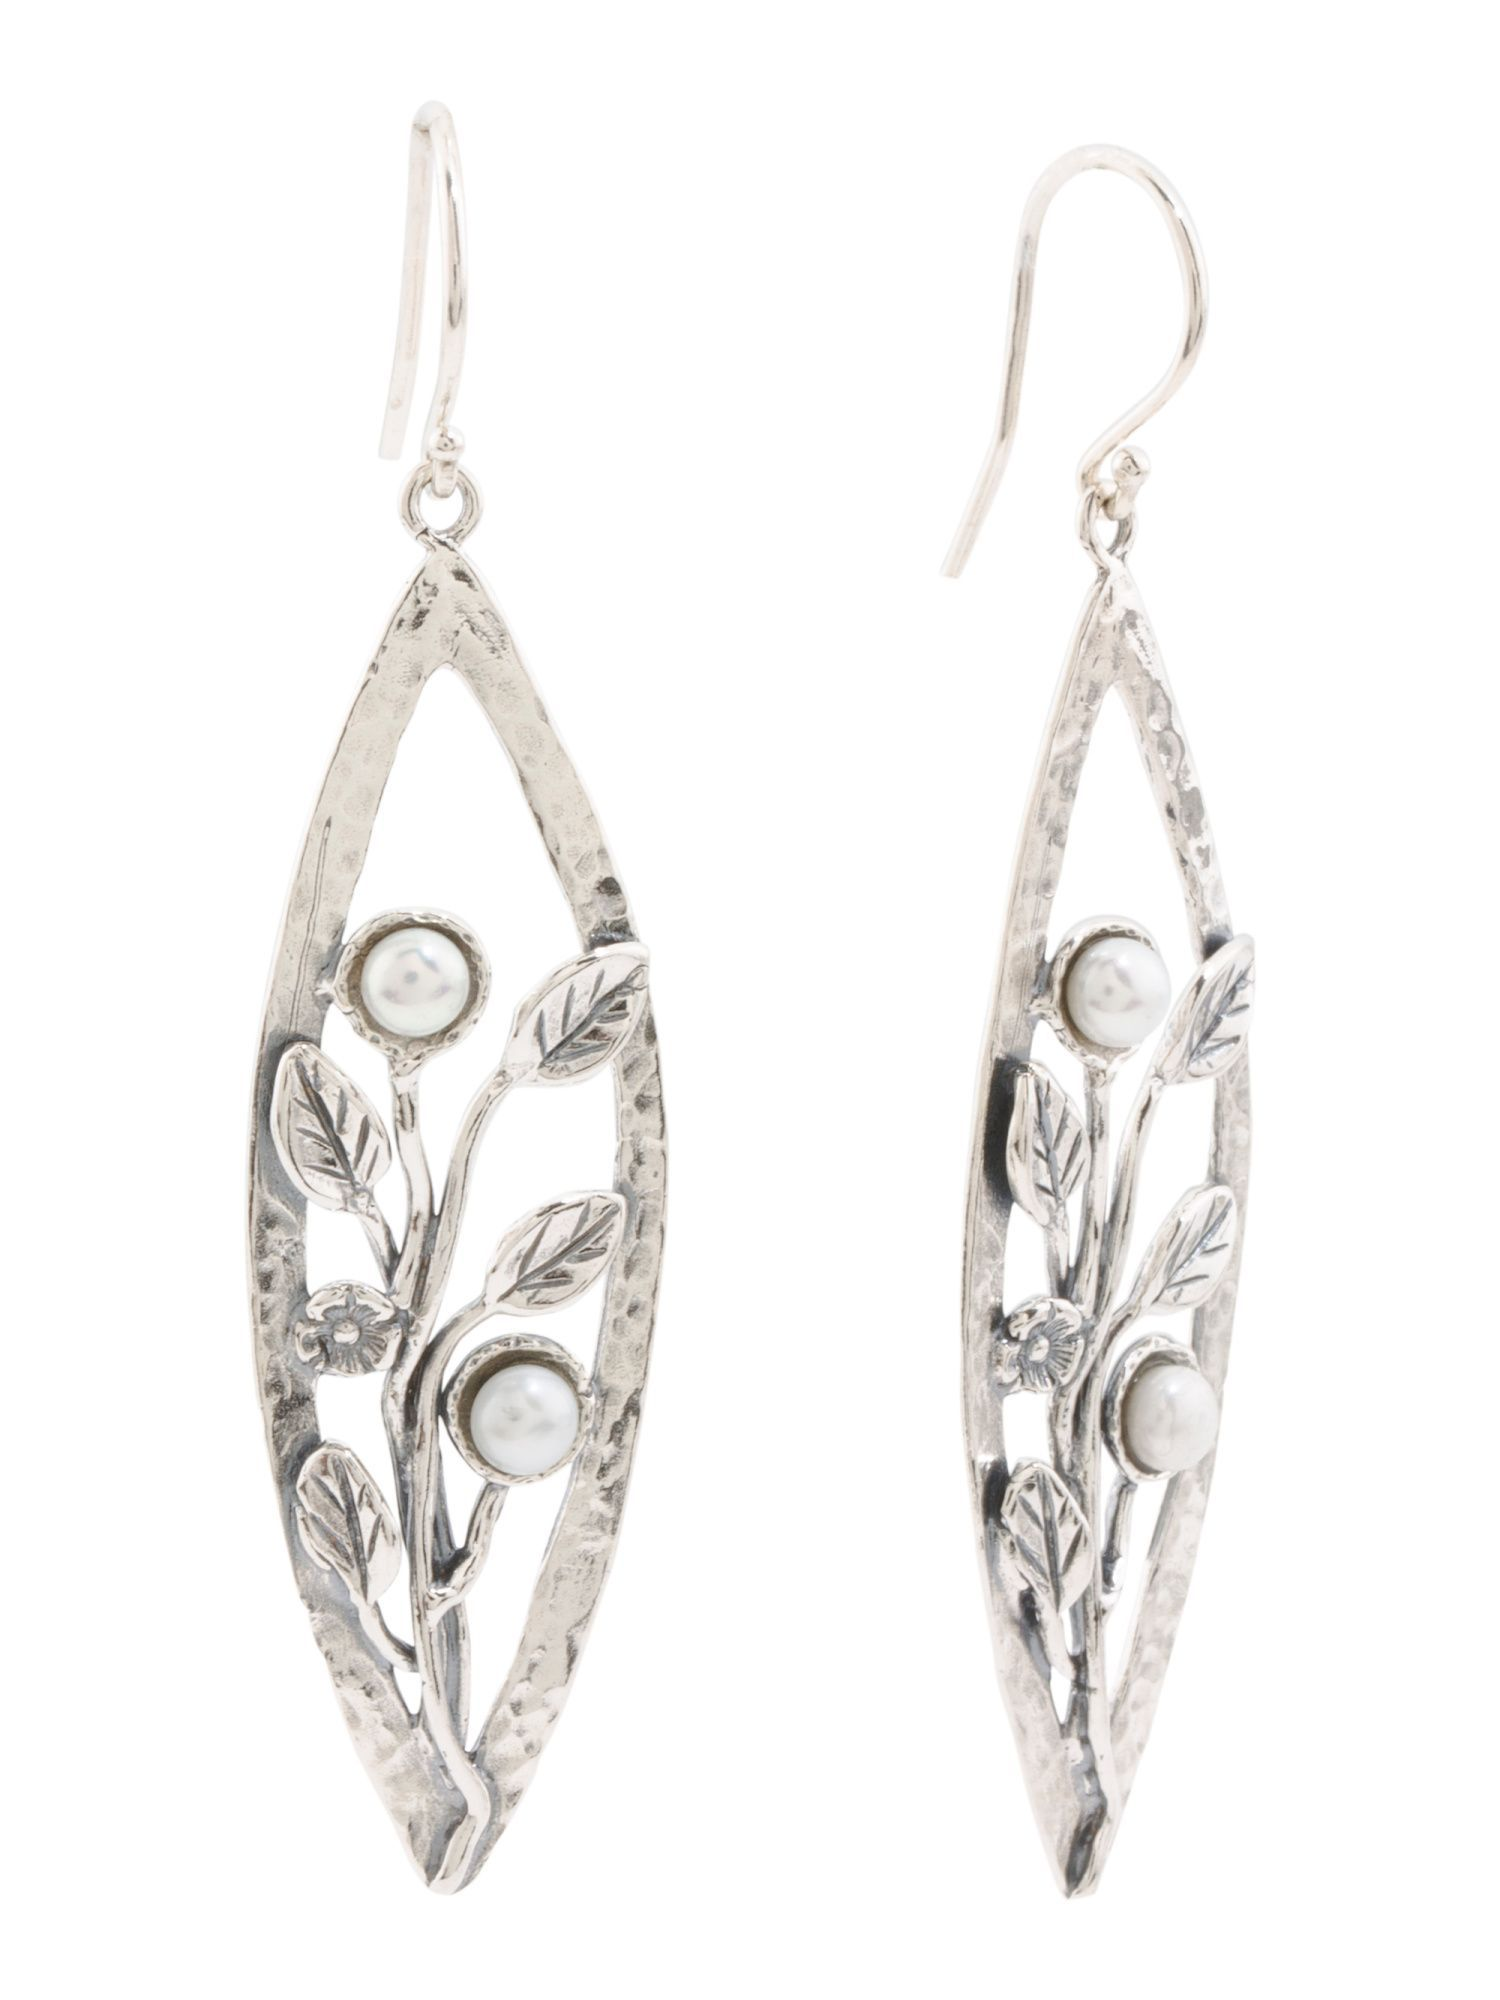 127dadd8c Made In Israel Sterling Silver Pearl Leaf Earrings | Products ...